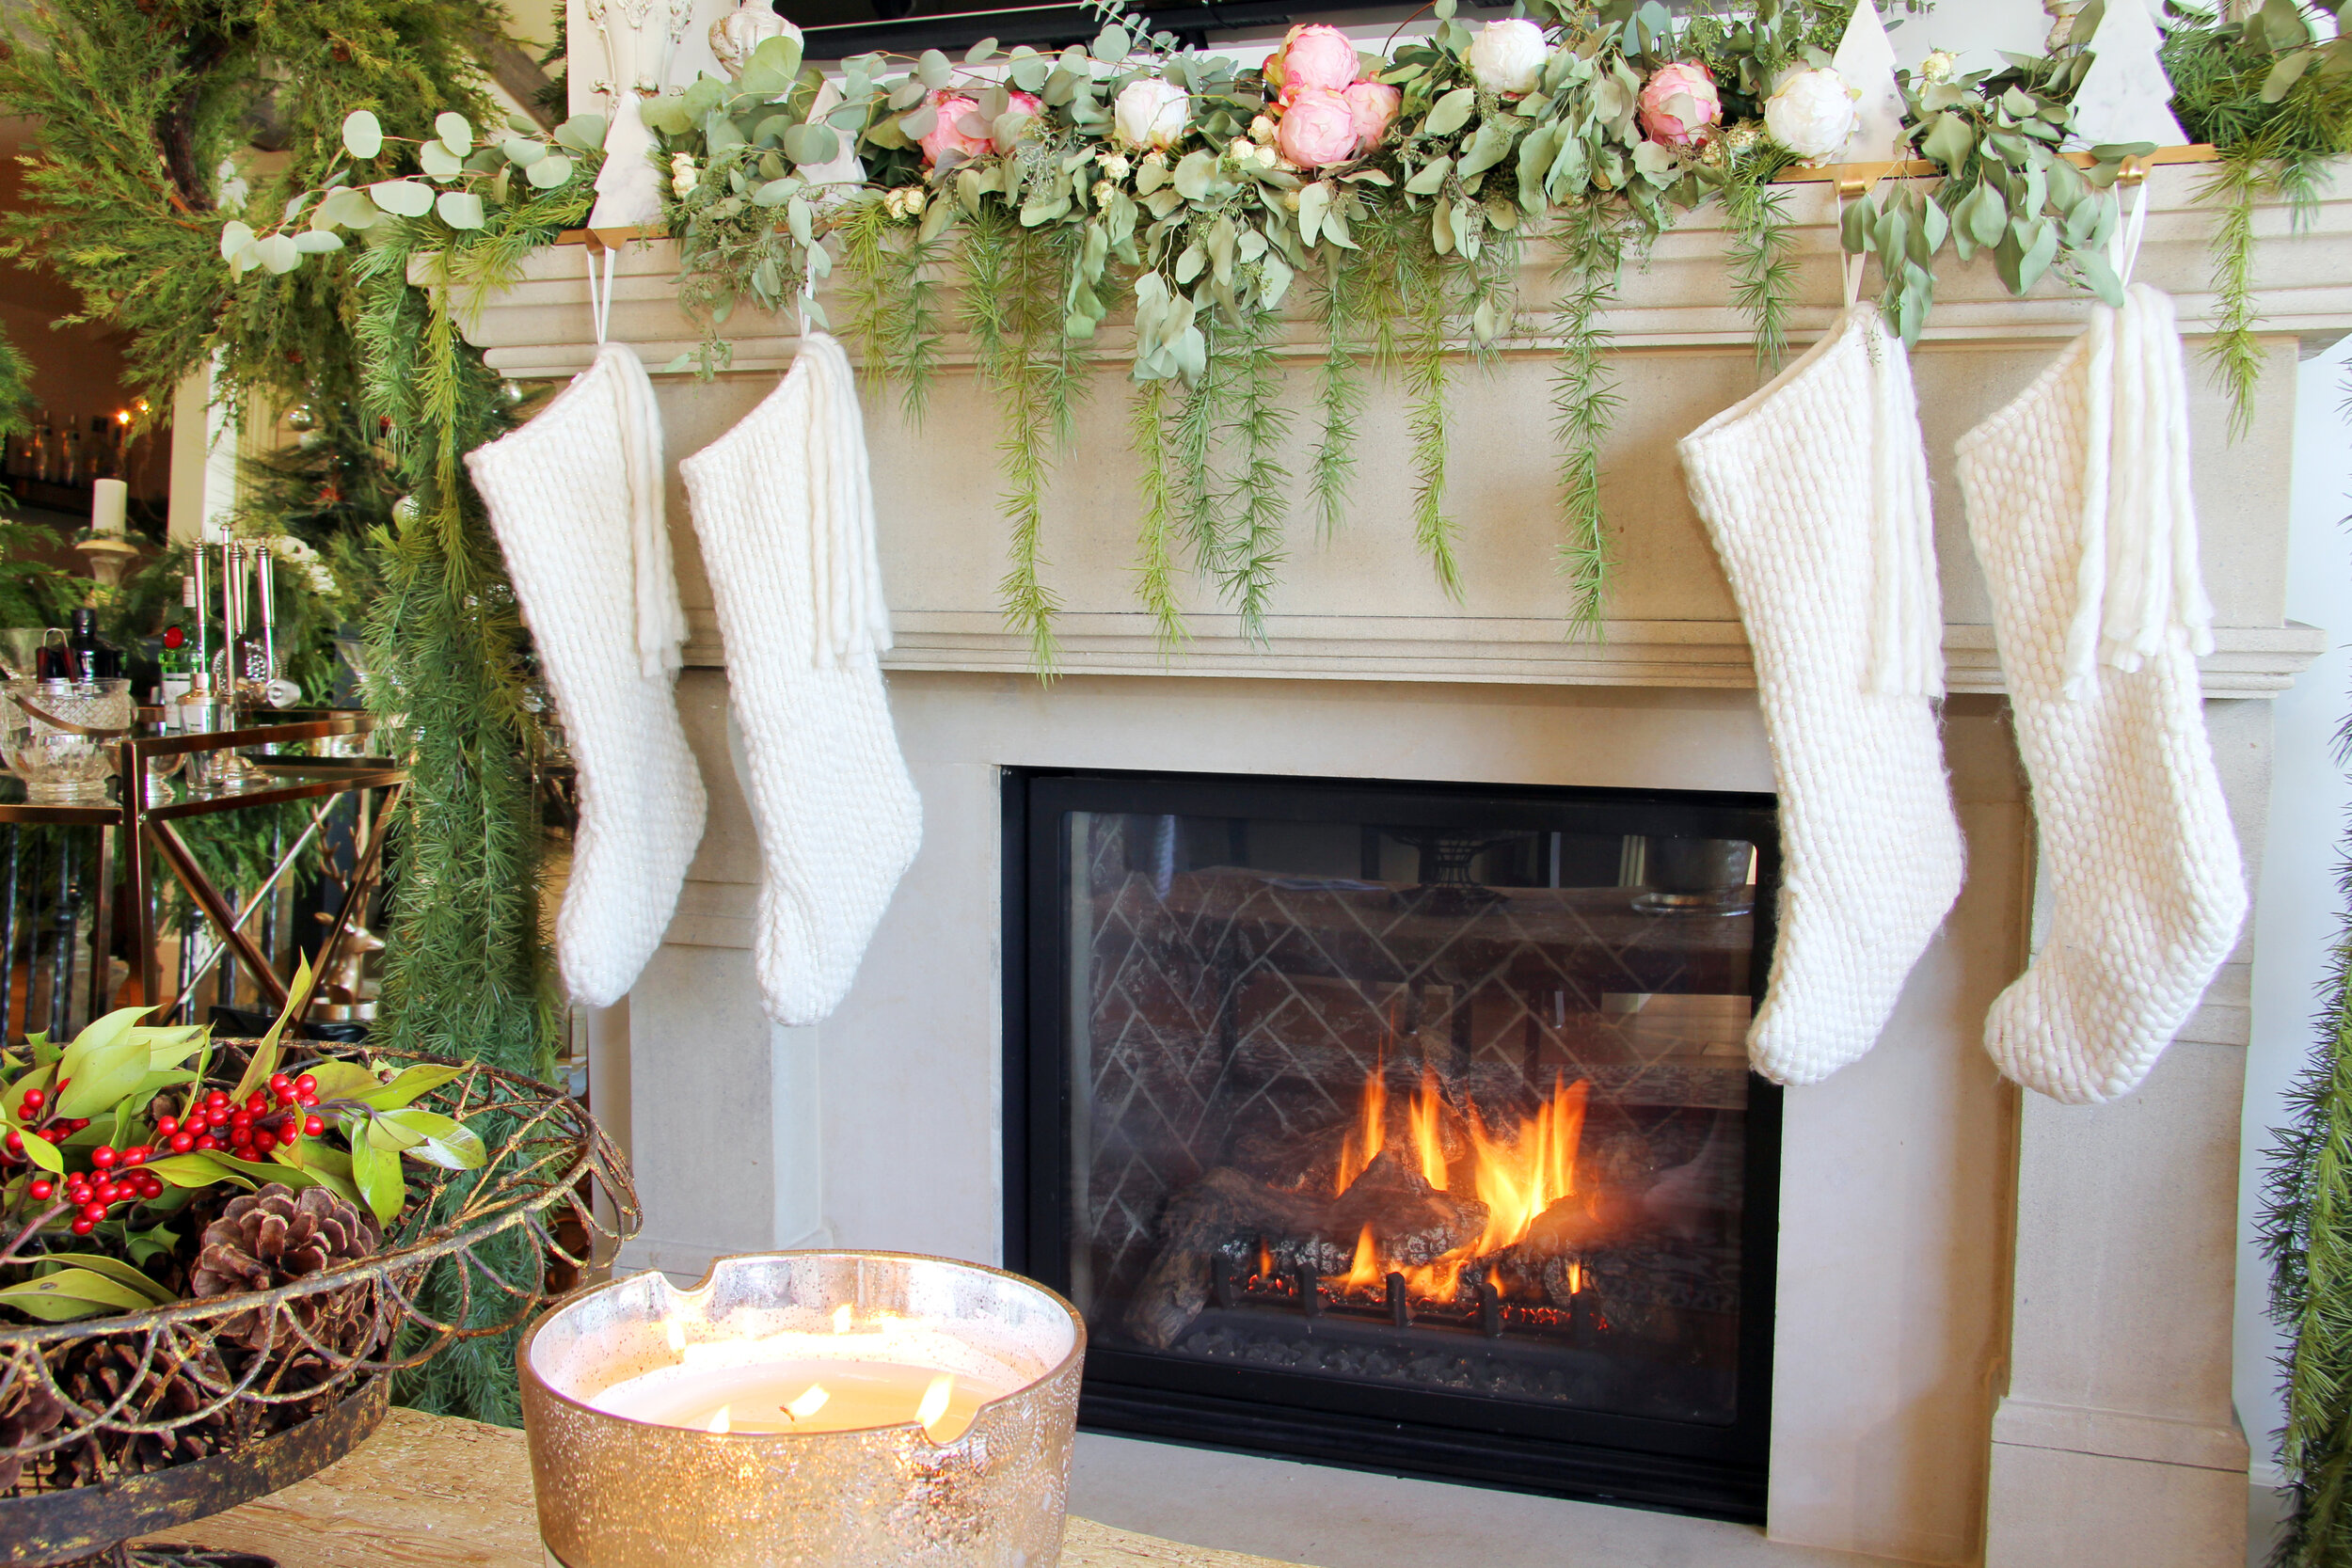 Stocking stuffers or small gifts for women, including mom, sister, grandmother, and daughter to put into the beautiful white stockings hanging from a mantle adorned with pink roses and greenery. A fire is lit in the fireplace with a candle nearby and cart with festive beverages.